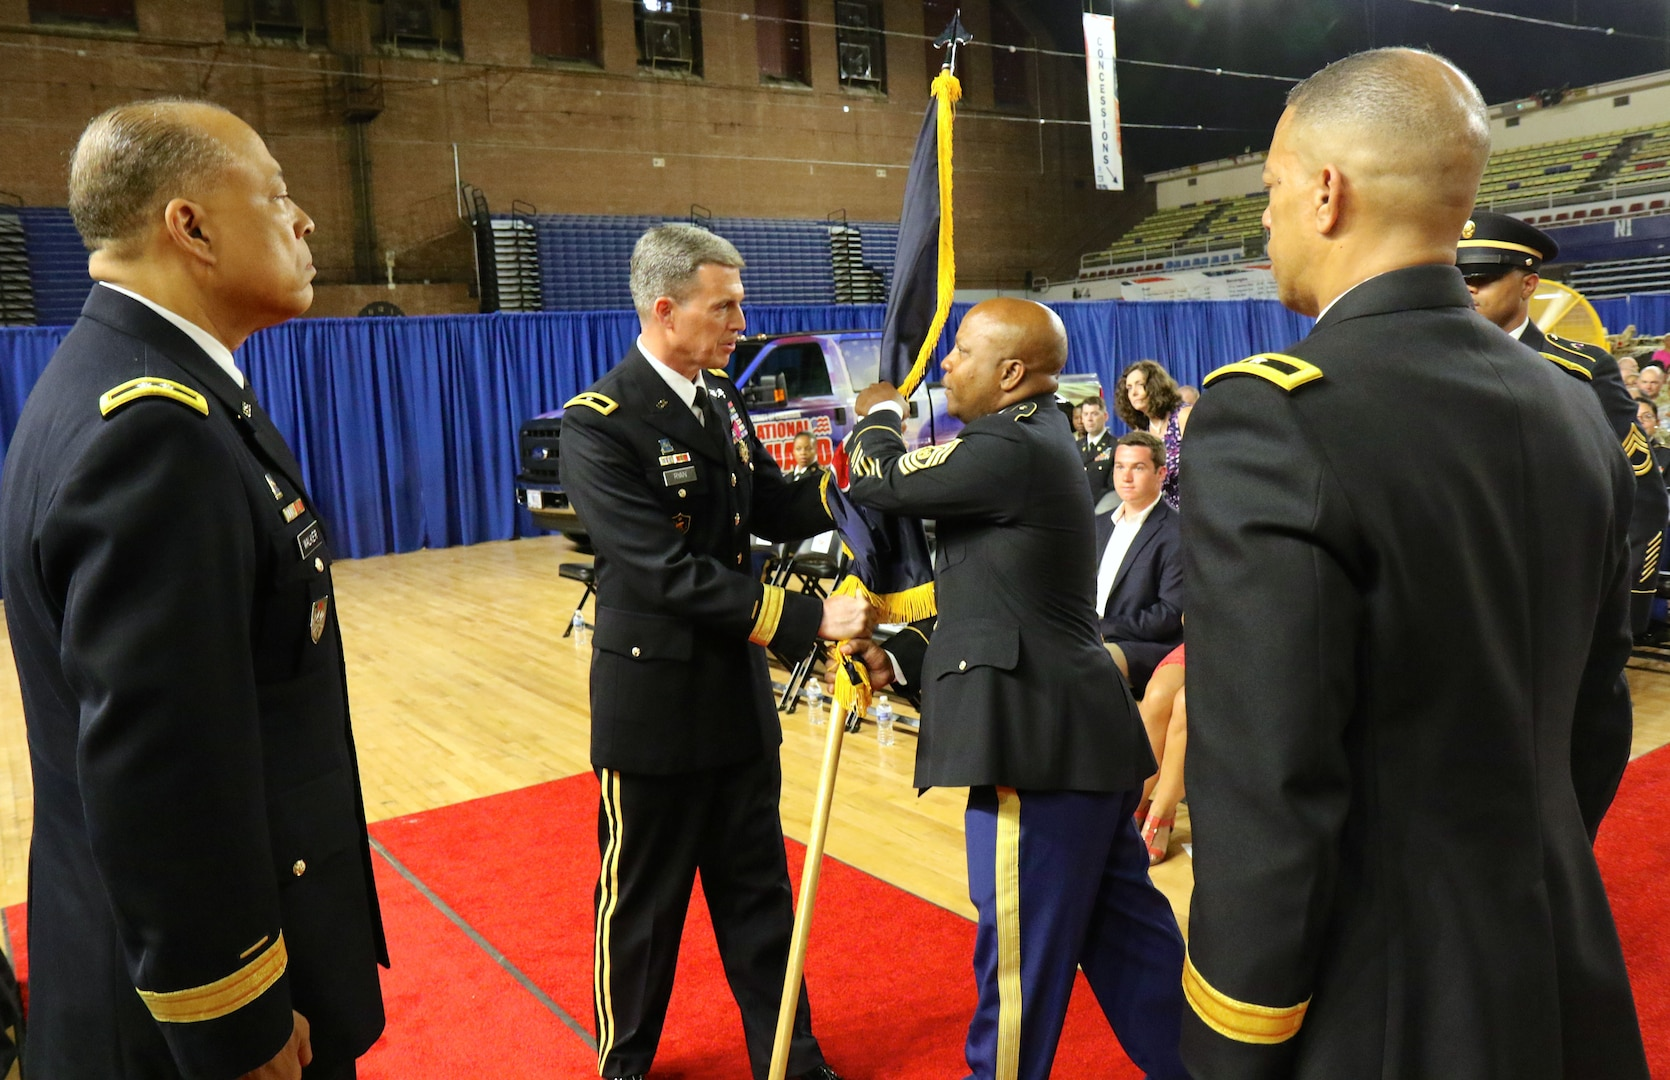 WASHINGTON - Brig. Gen. Robert K. Ryan passes the Land Component Command (LCC) flag to Command Sgt. Maj. Terrance A. Smith during the change of responsibility ceremony, June 10, 2018 at the District of Columbia Armory. Smith assumes responsibility as the new LCC command sergeant major, the top enlisted leader of Soldiers in units assigned to the LCC, and will ensure their readiness for all federal and district response missions in support of civil authorities. (U.S. Army National Guard photo by Sgt. Adrian Shelton/Released)